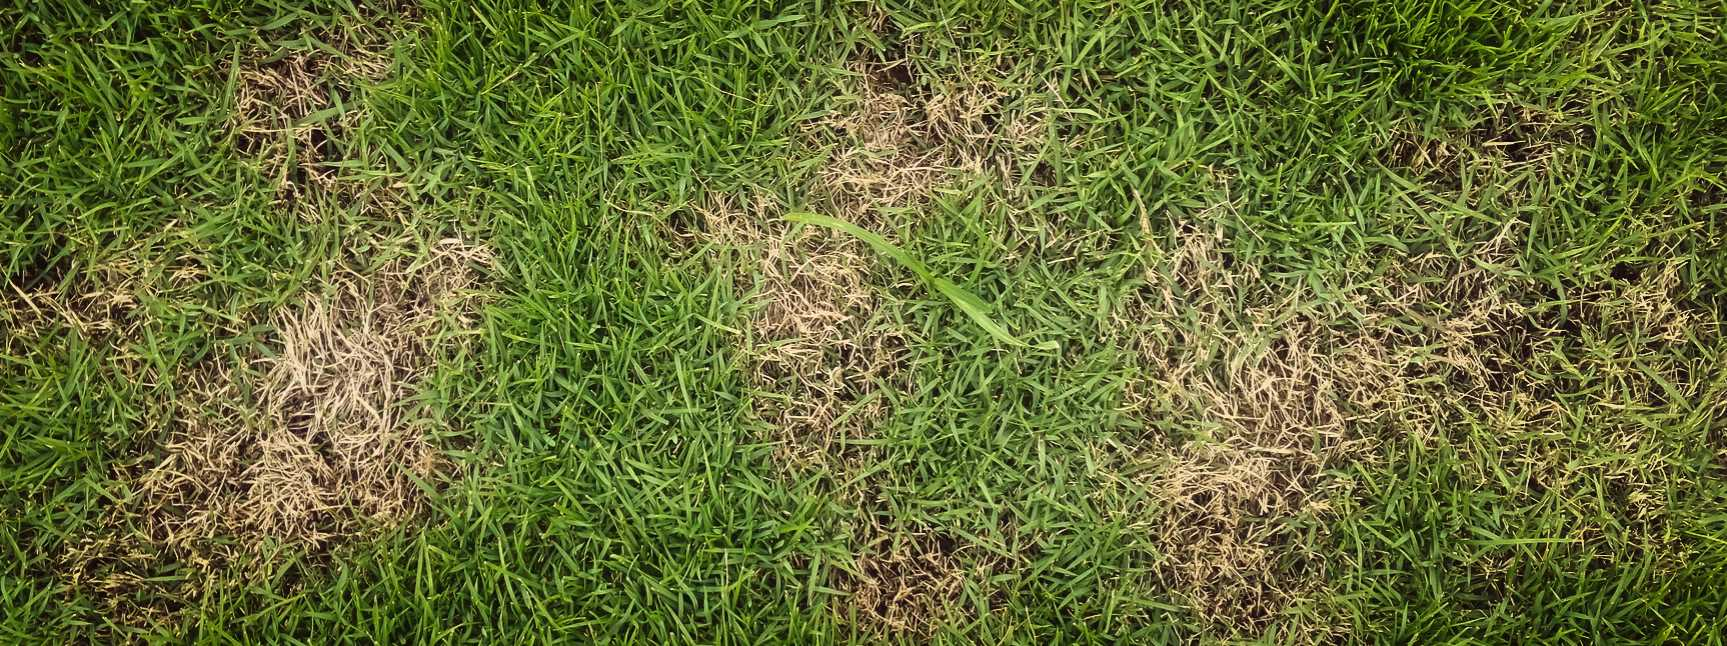 Avoiding Brown Spots In Your Yard - Lawn Care Services Springfield MO